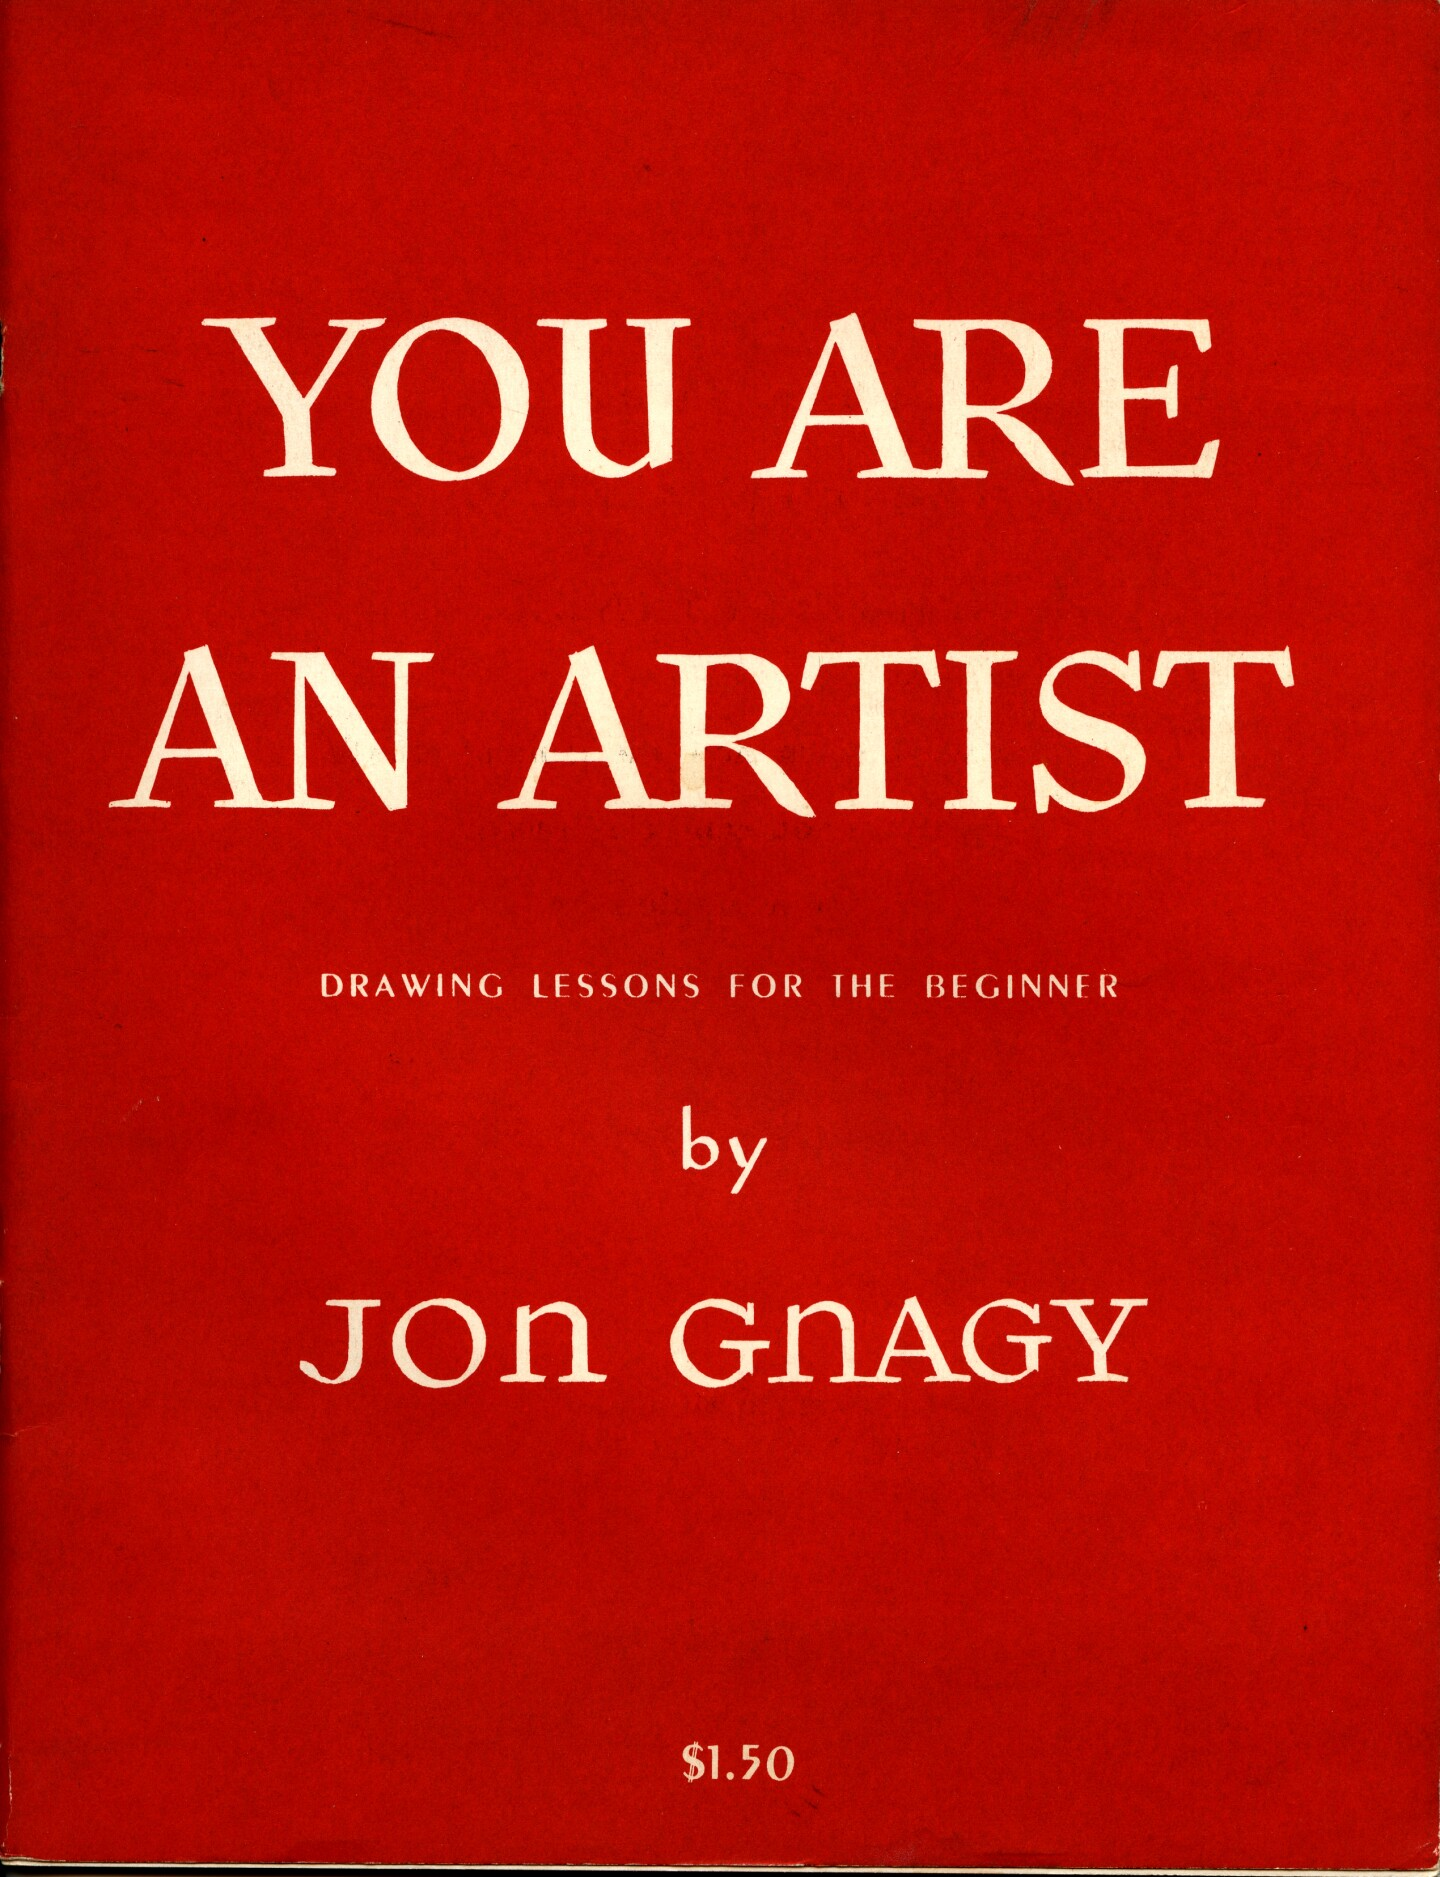 """The book cover for Jon Gnagy's book, """"You Are an Artist."""" It is a red book cover with the words, """"You Are An Artist"""" in big, bold letters. Underneath, it reads """"Drawing lessons for the beginner, by Jon Gnagy."""""""